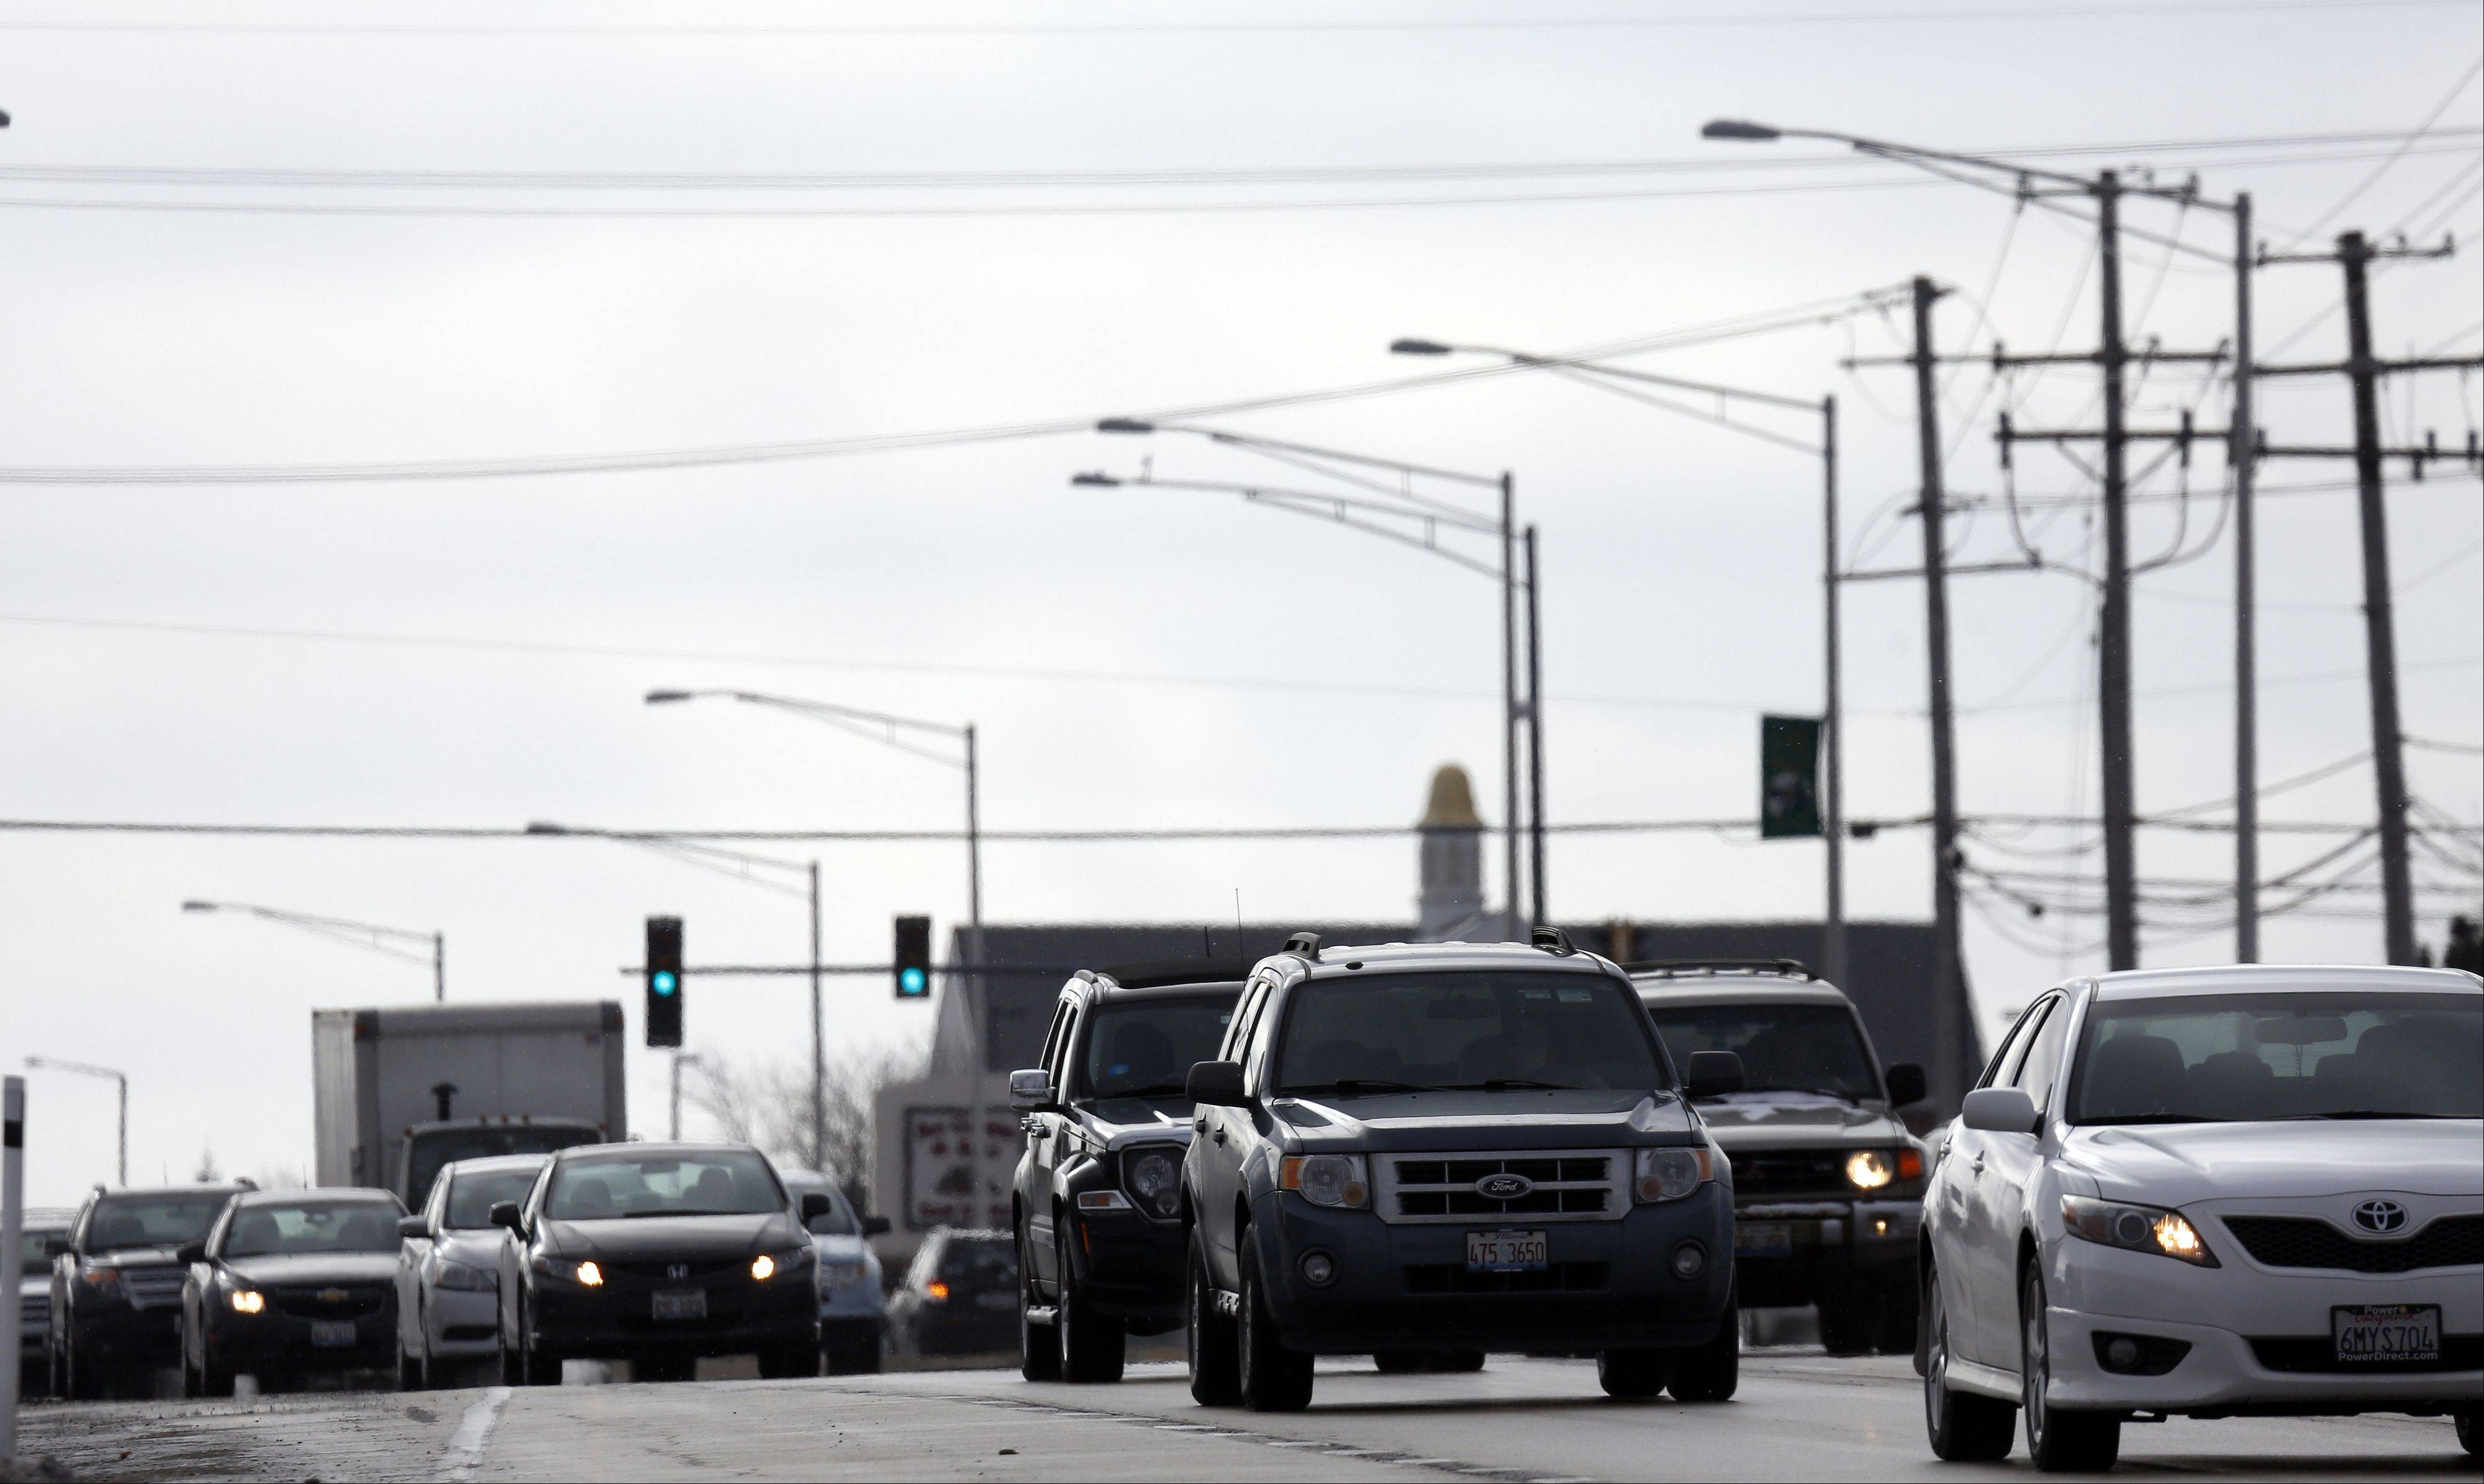 A continuous flow intersection at Randall and Algonquin roads is part of a McHenry County Division of Transportation plan to improve the 3�-mile stretch of Randall Road from Ackman Road to County Line Road. A preliminary cost estimate for construction for the Randall Road improvement project is $80 million.